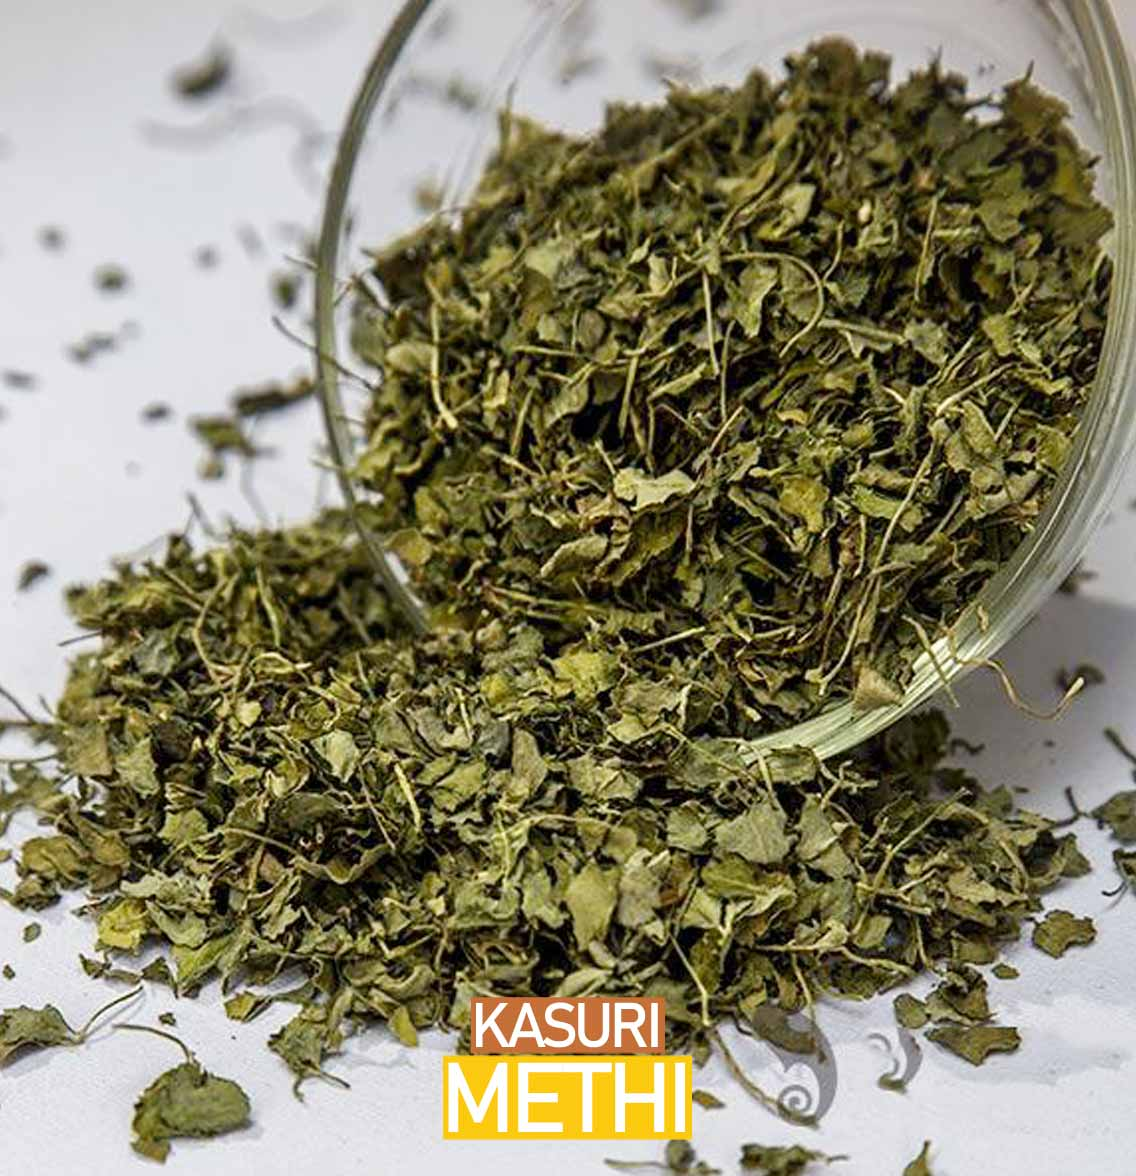 Kasuri Methi - Benefits of Kasuri Methi That Will Blow Your Mind